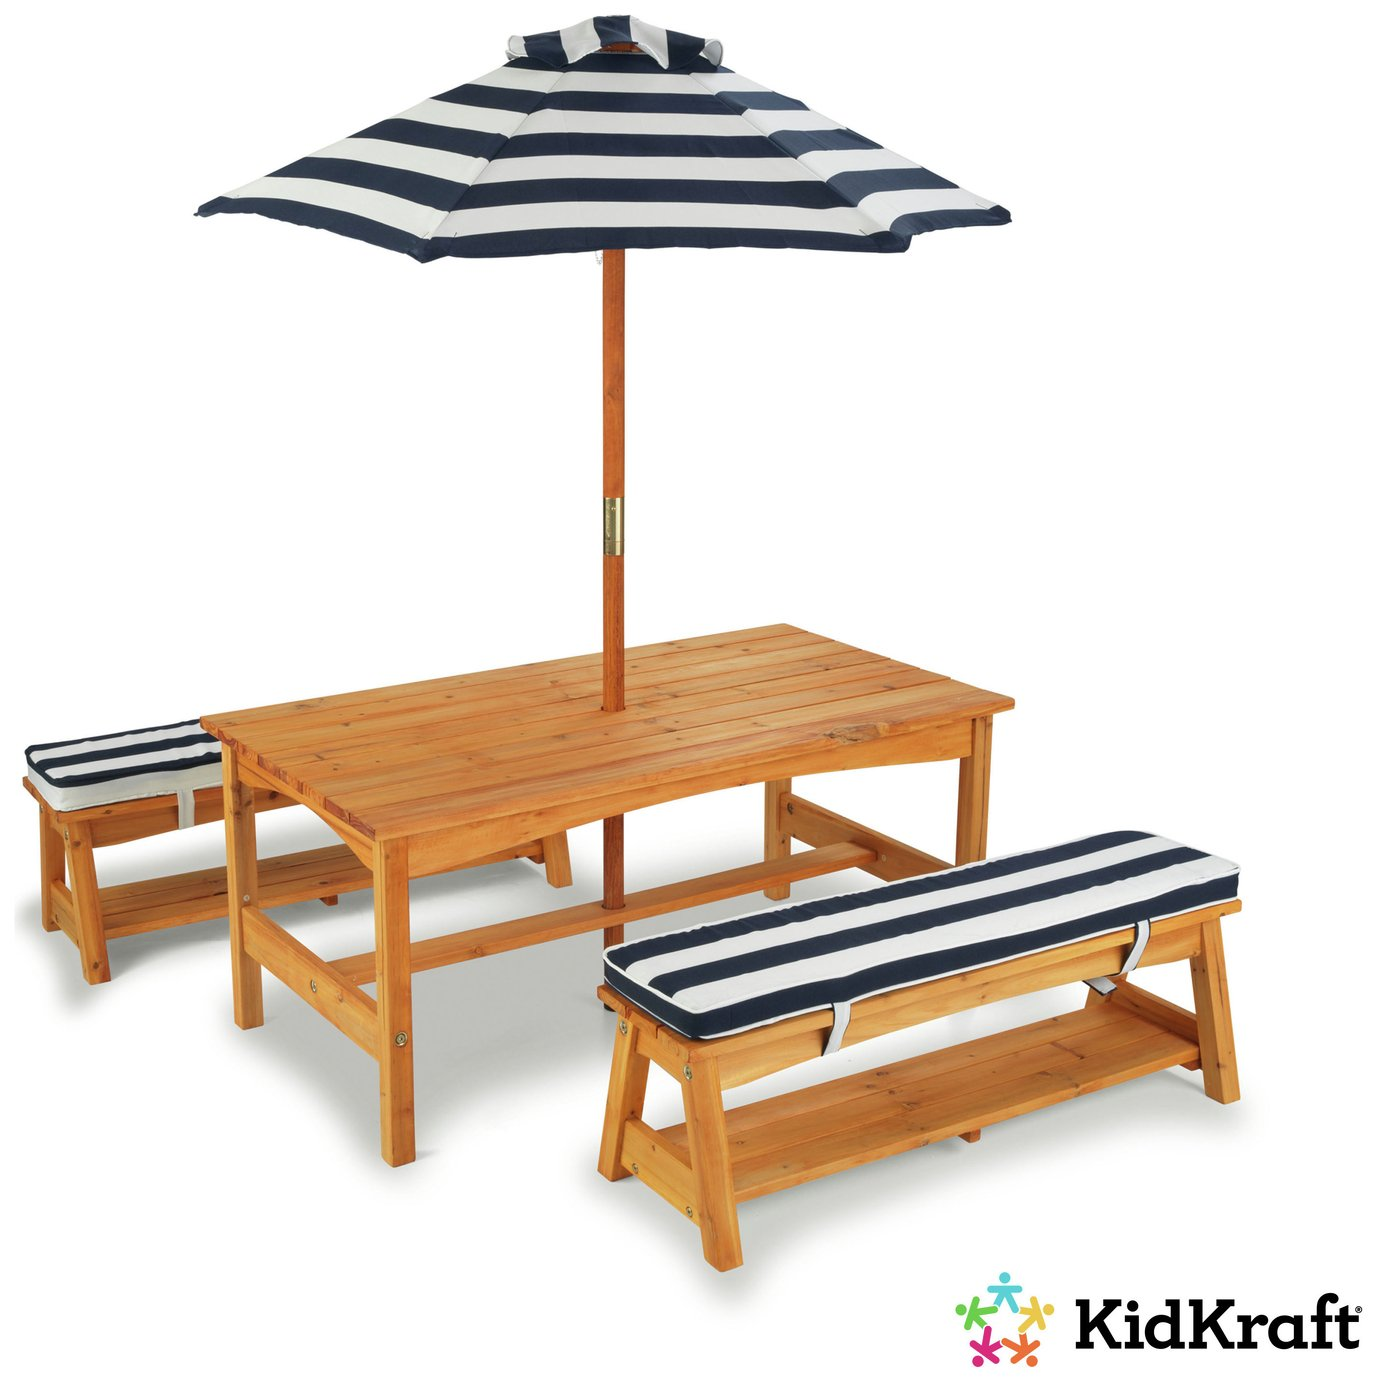 KidKraft Outdoor Table And Bench Set   Navy And White